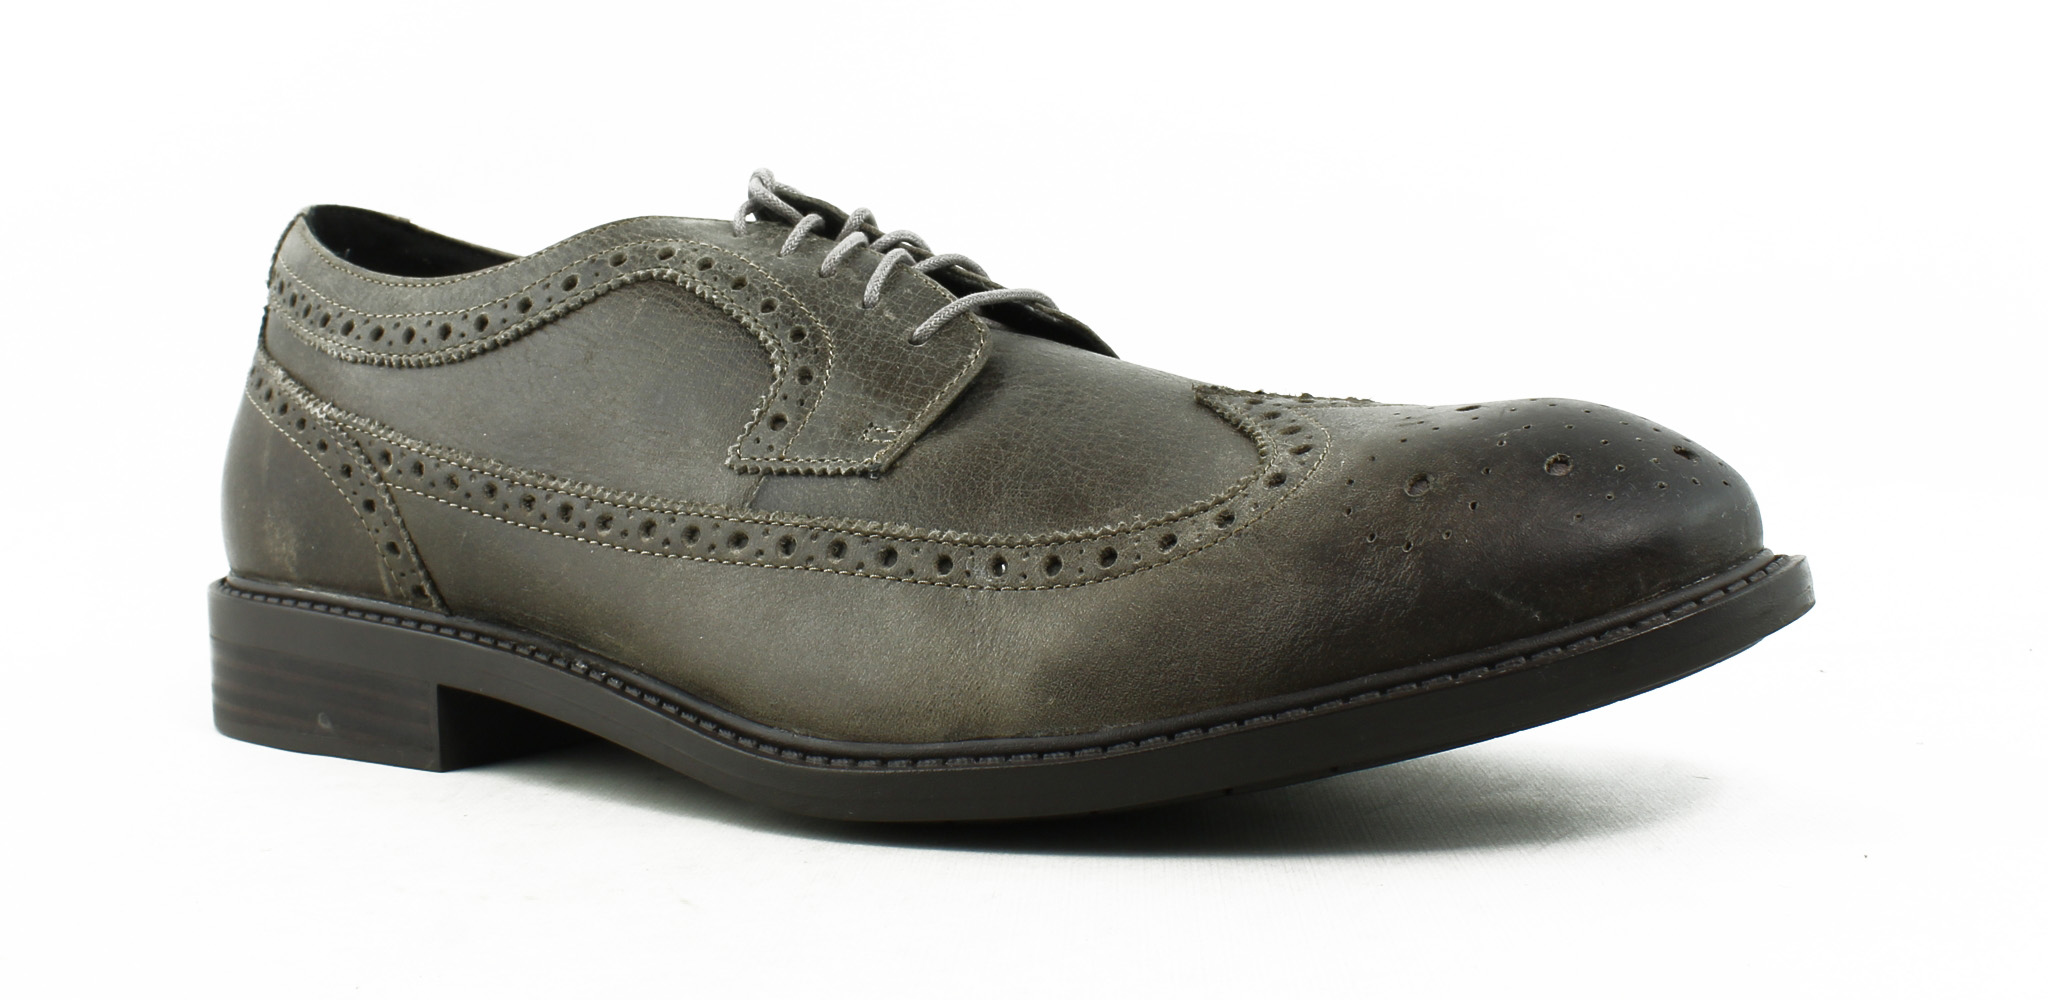 Dunham Mens Stone Oxford Dress Shoes Size 15 New by Dunham